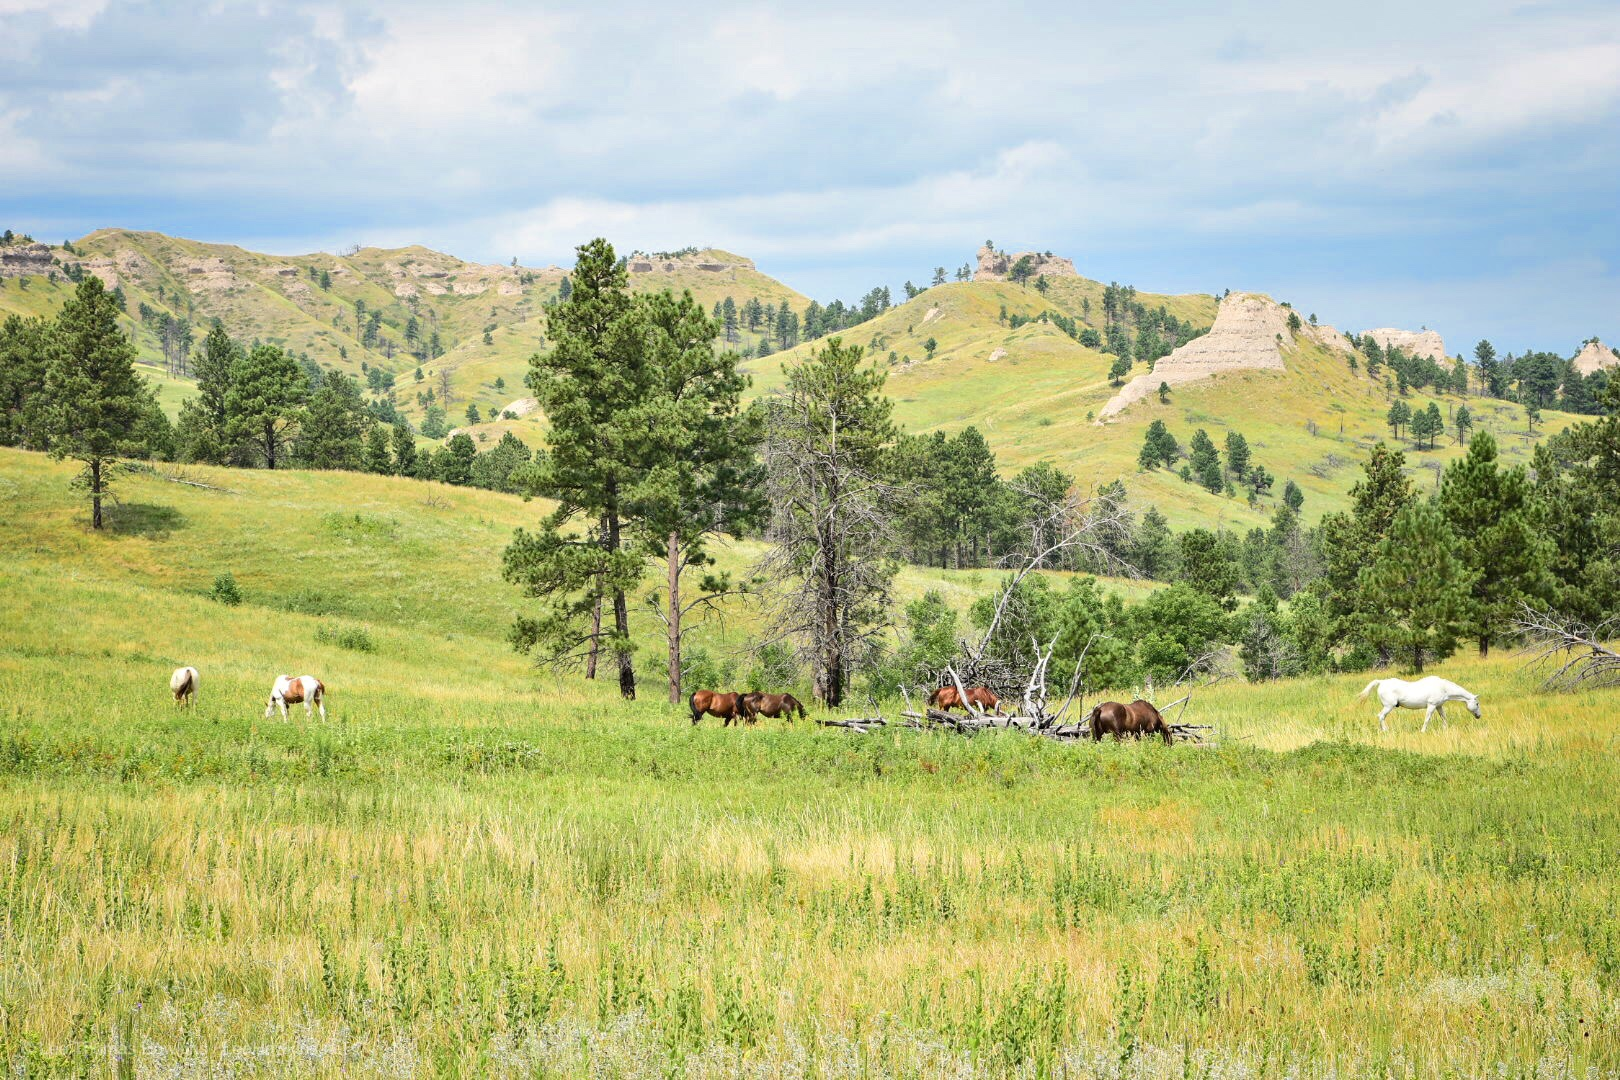 Horses graze in light-green grass meadow with grass-covered peaks in the background. Evergreen trees dot the meadow and the peaks.